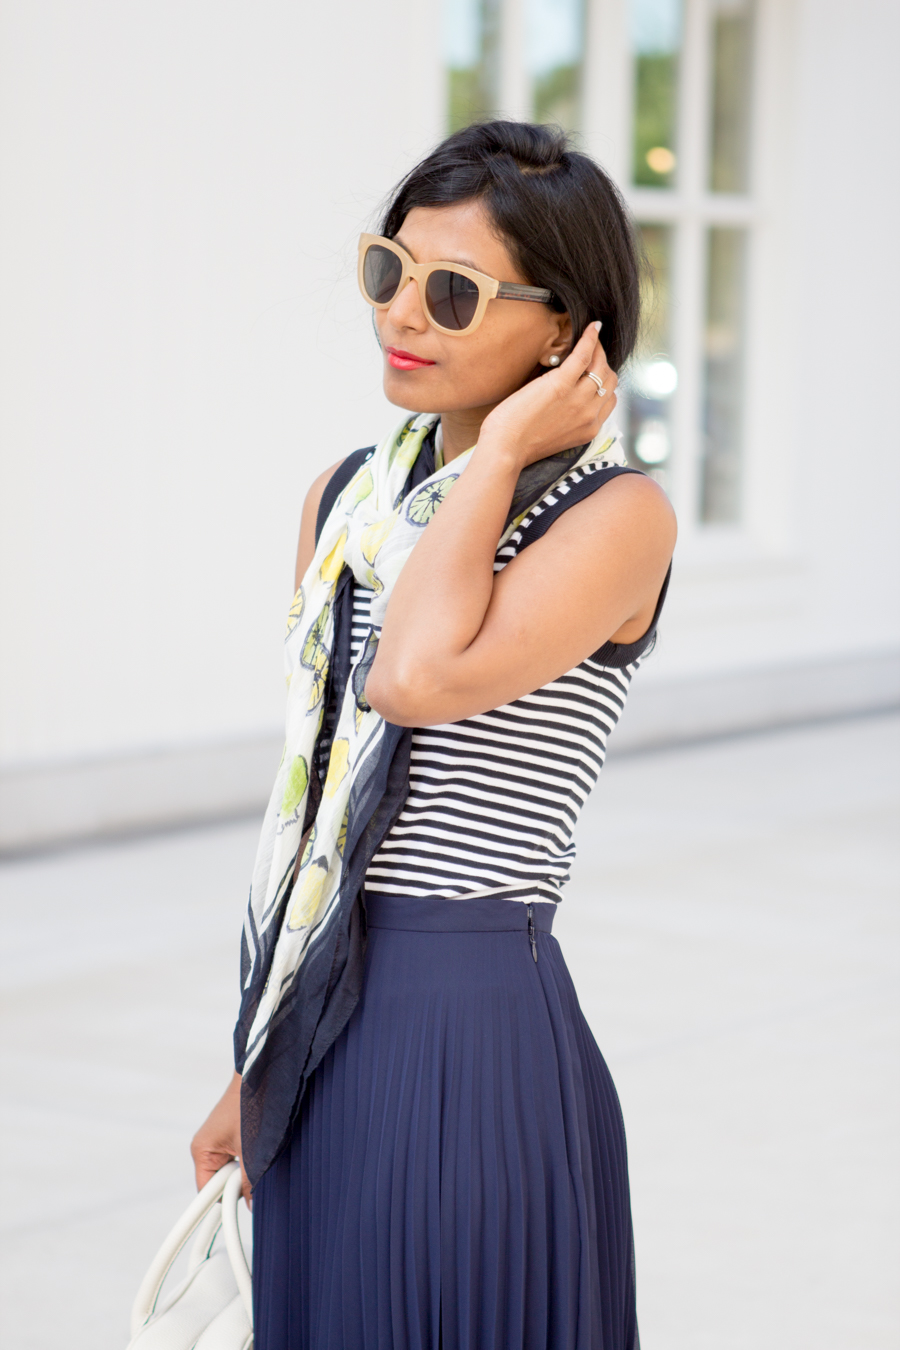 Work Style Navy Skirt Stripes and Lemon Lime